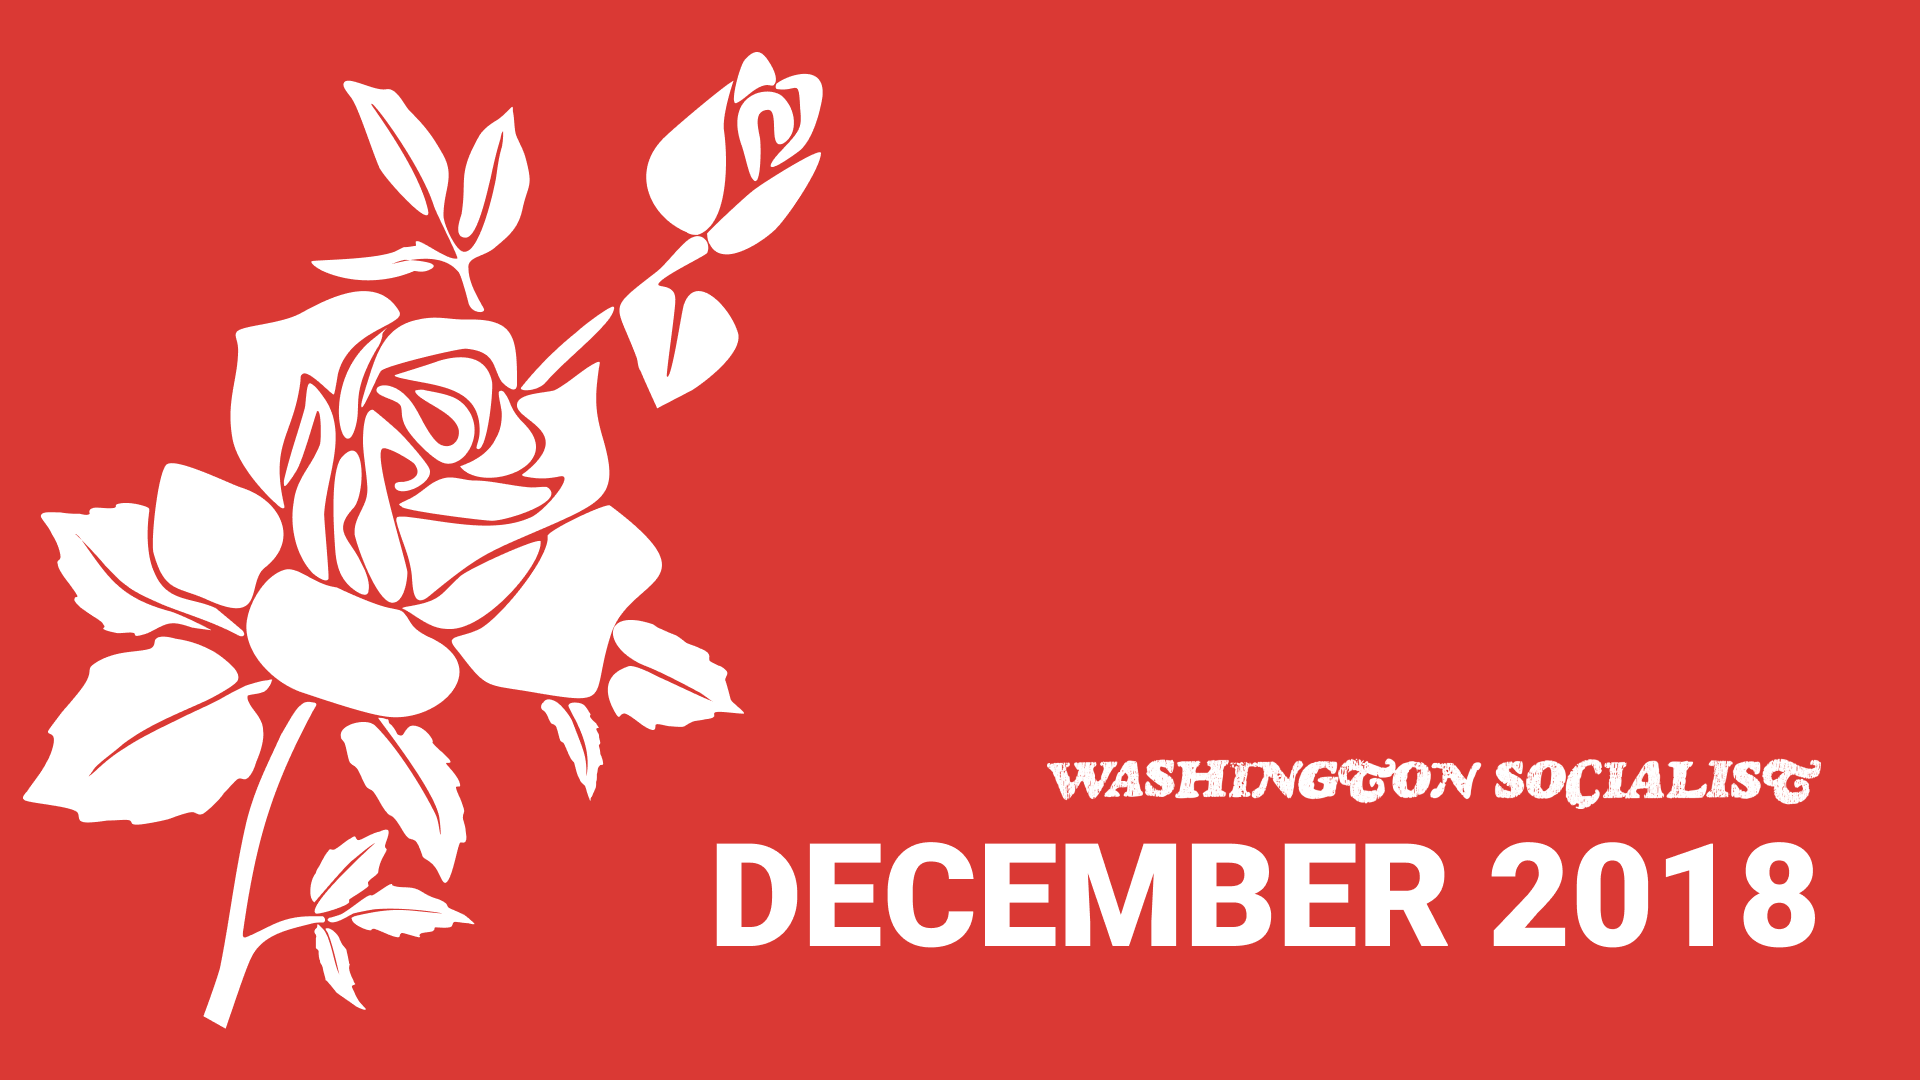 Washington Socialist Cover, December 2018